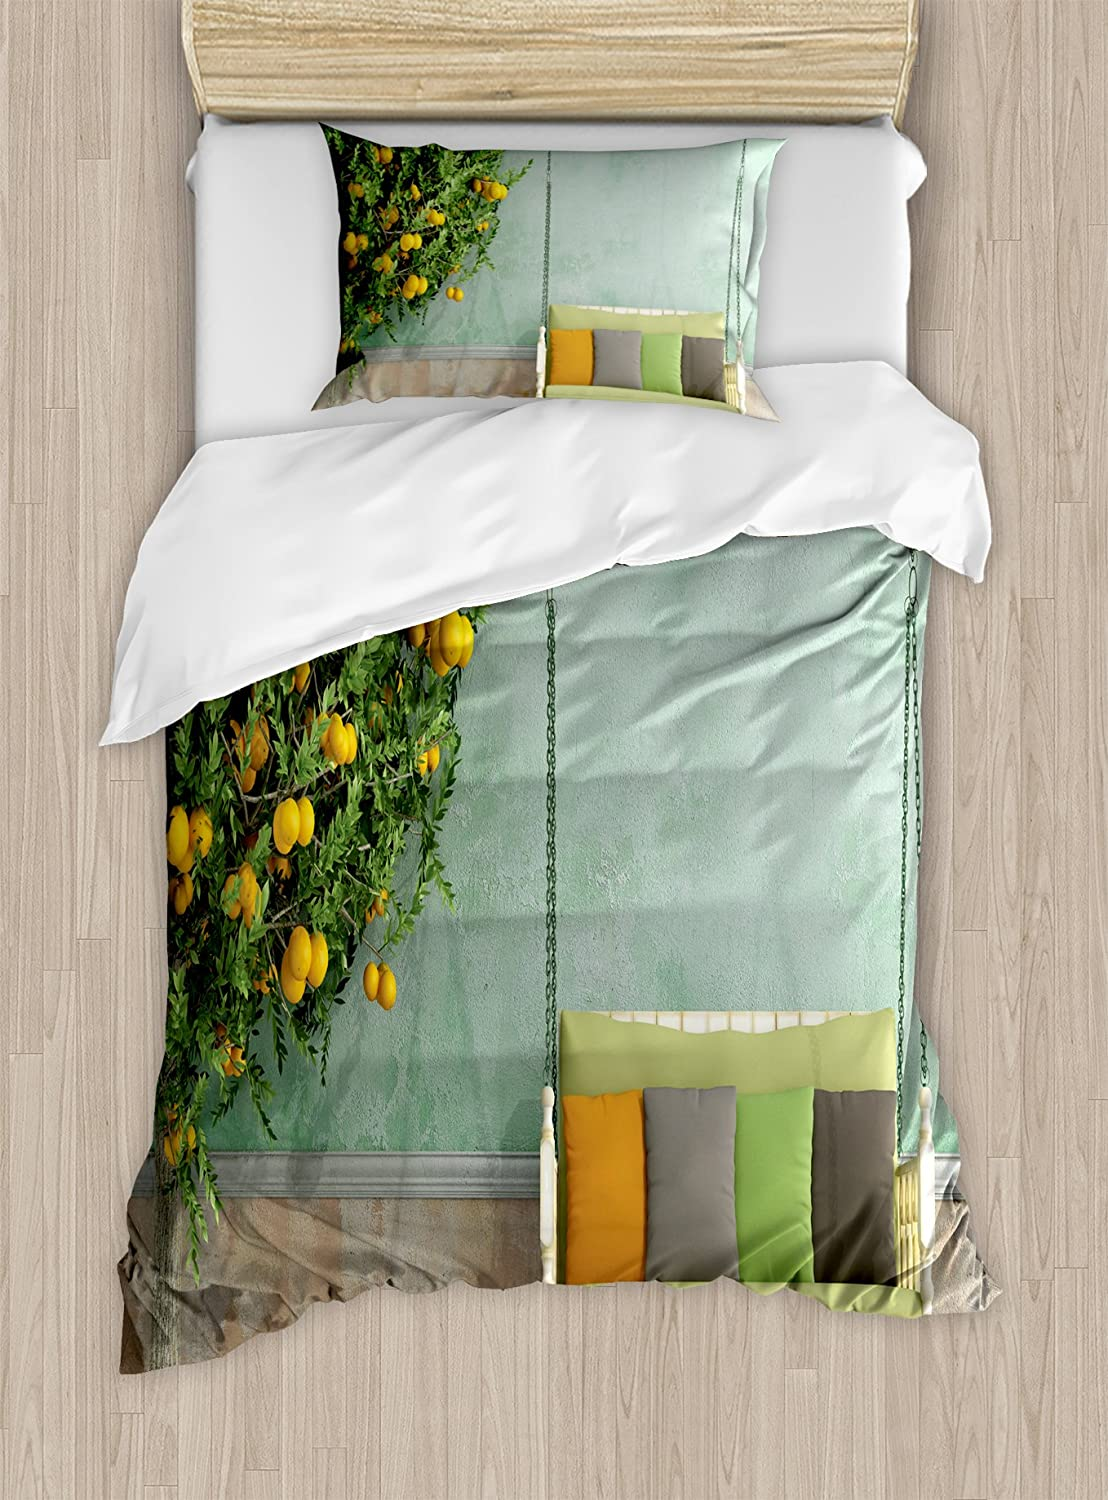 B0756DKM3D Ambesonne Garden Duvet Cover Set, Vintage Wooden Swing in The Garden of an Old House with a Lemon Tree Summertime, Decorative 2 Piece Bedding Set with 1 Pillow Sham, Twin Size, Yellow Green 81aO4cNvXWL.SL1500_